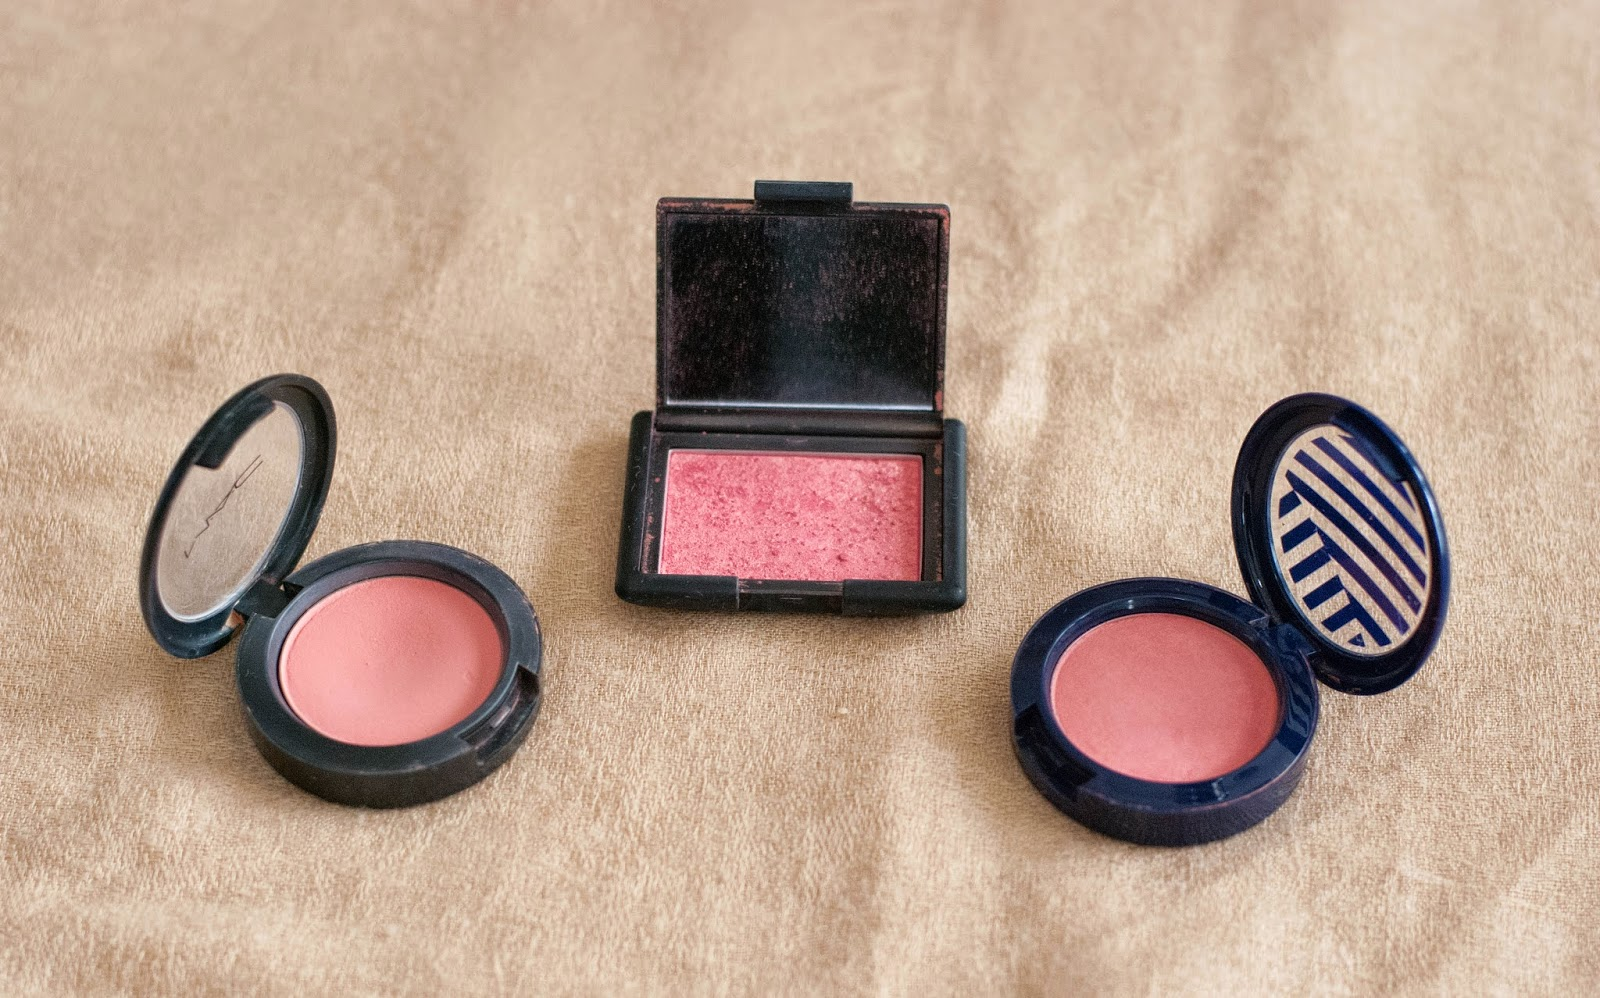 Blush Collection - The corals